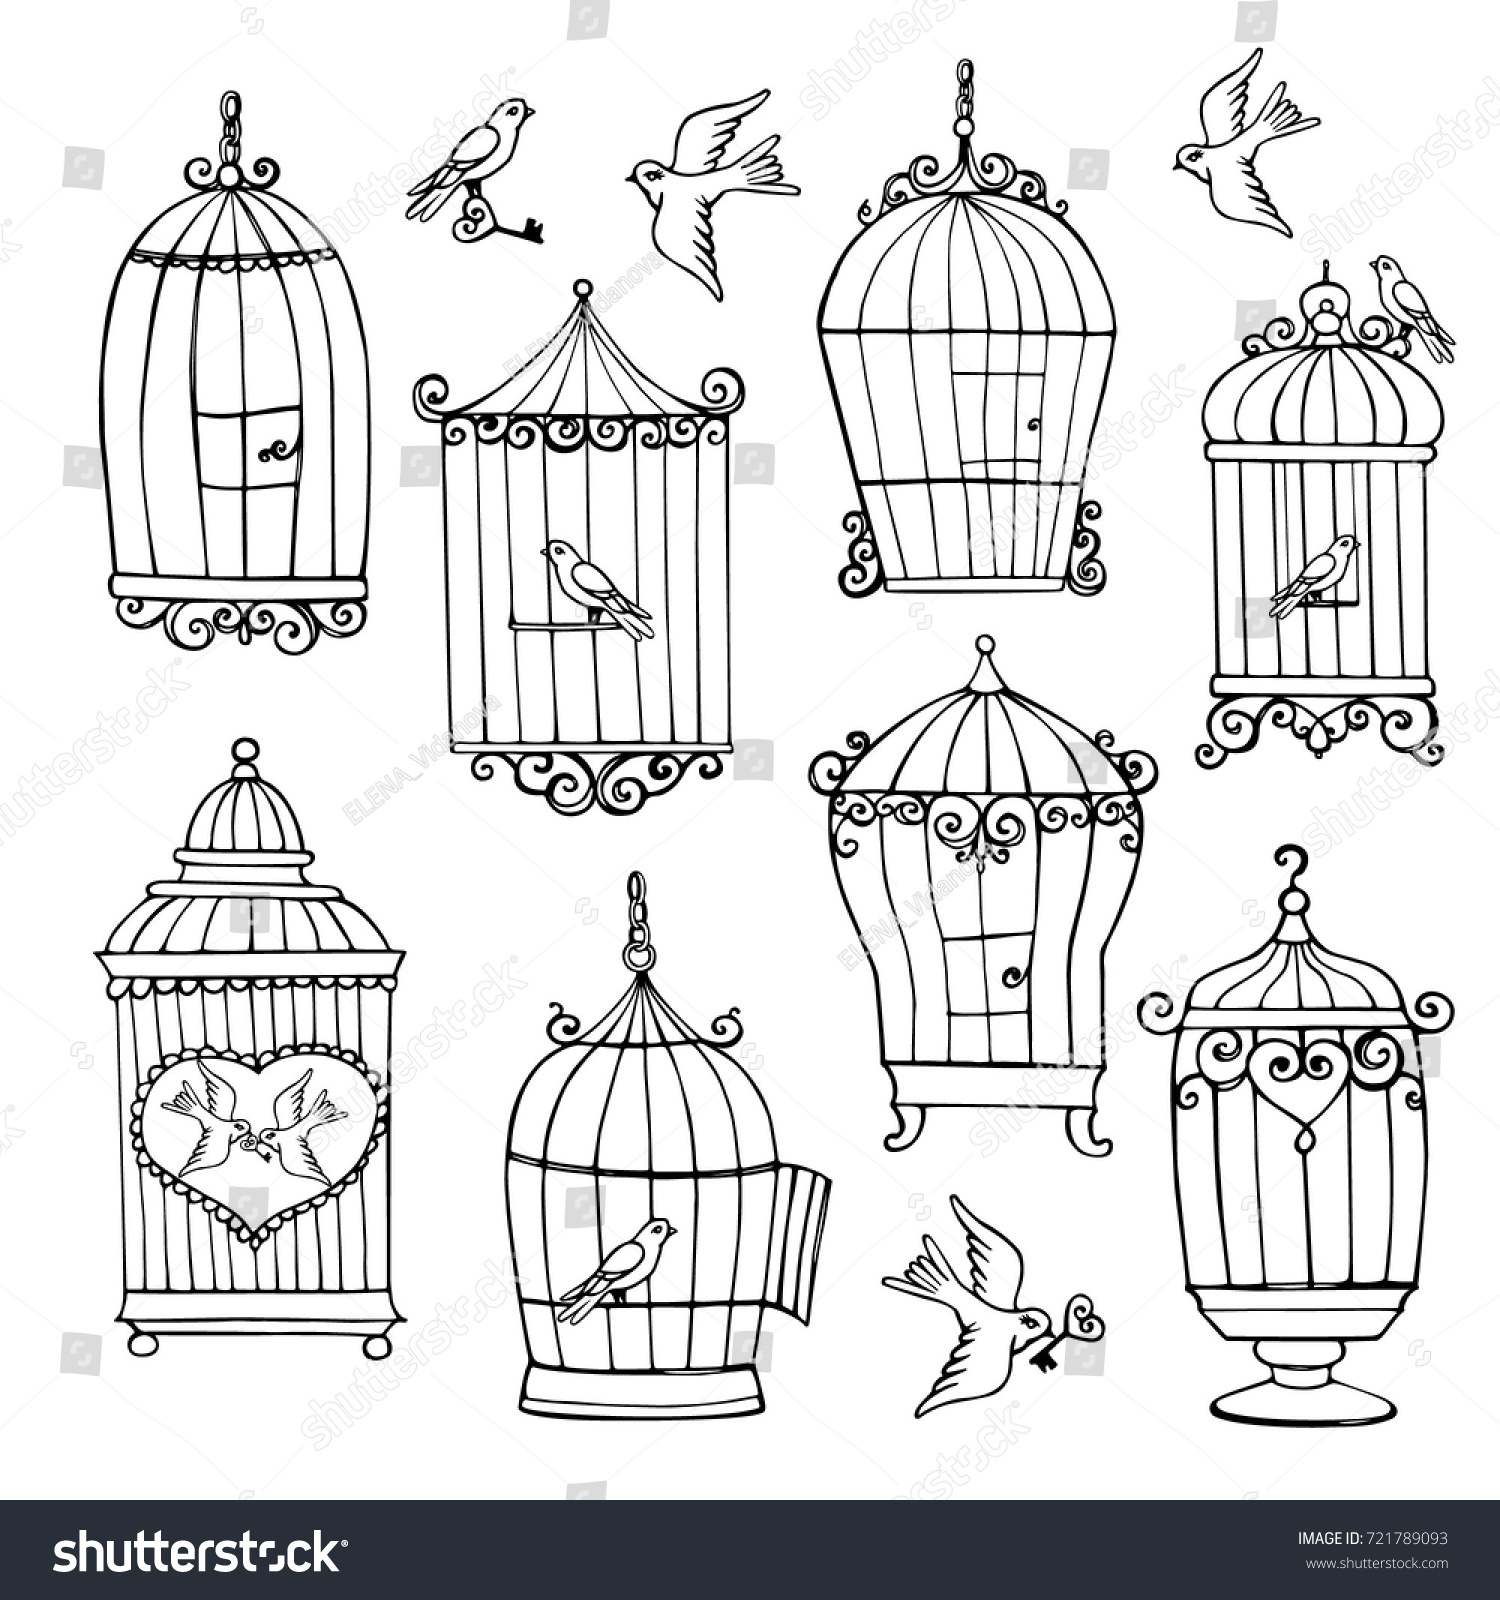 vector seamless pattern with hand drawn birds in cages silhouettes Dove Cage Color vector seamless pattern with hand drawn birds in cages silhouettes ez canvas